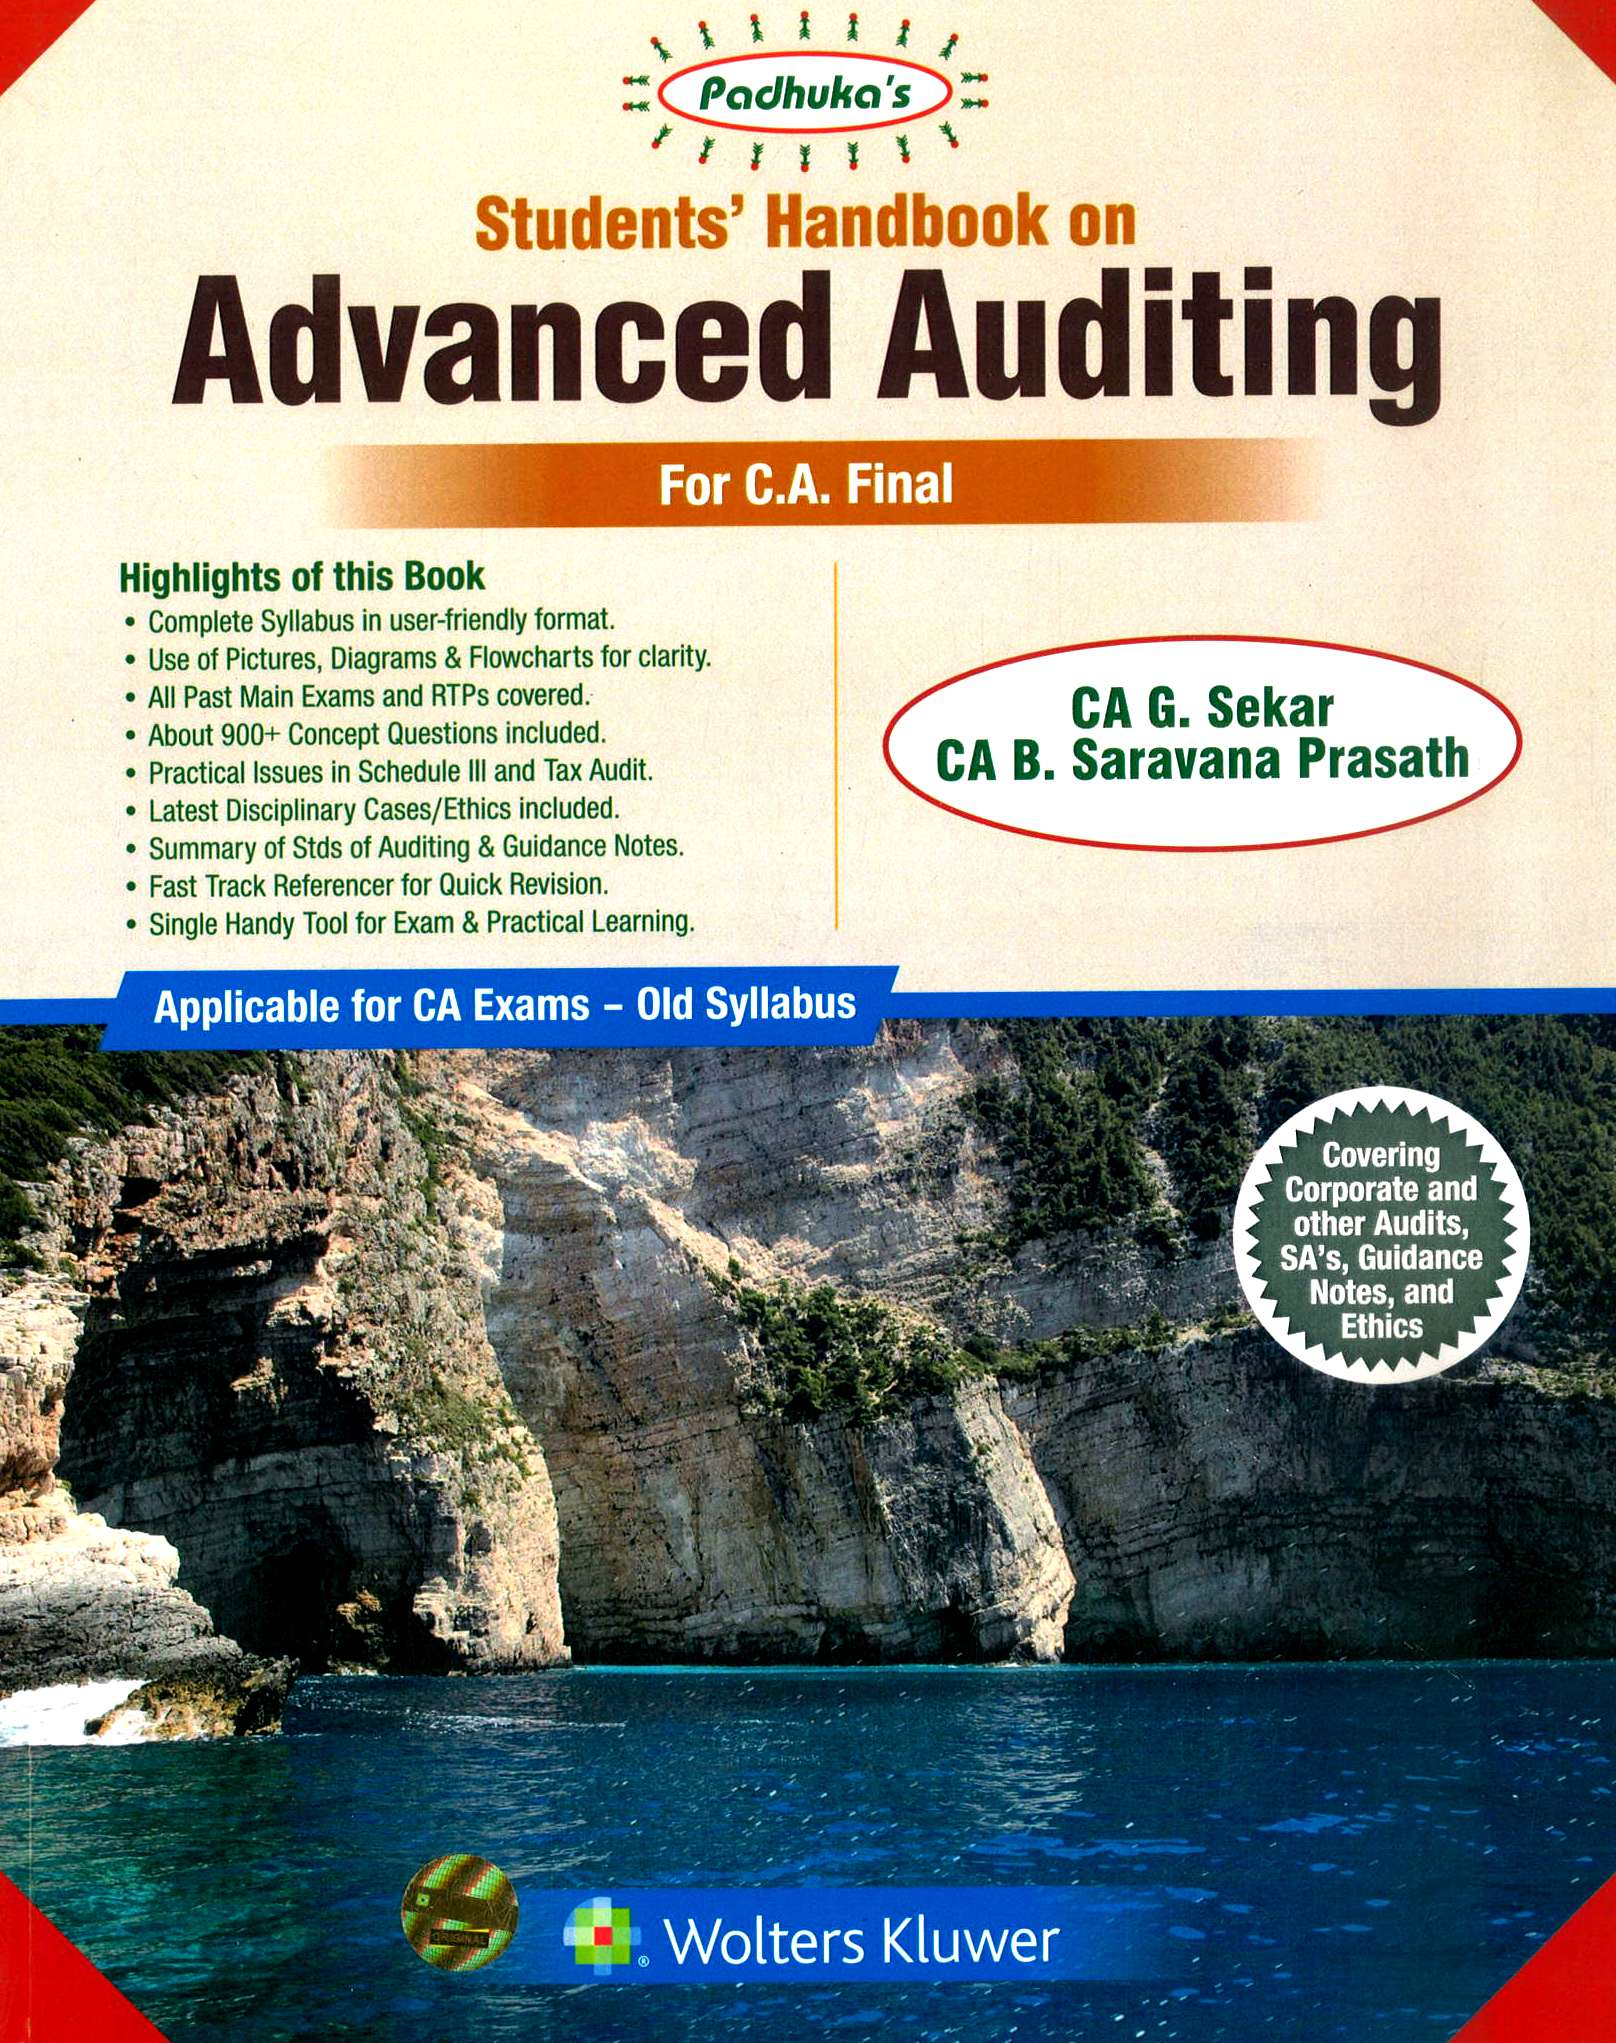 Padhuka's Student Handbook on Advanced Auditing CA Final (new Syllabus) by CA G. Sekar and CA B. Saravana Prasath (Wolters Kluwer Publishing) for nov 2020